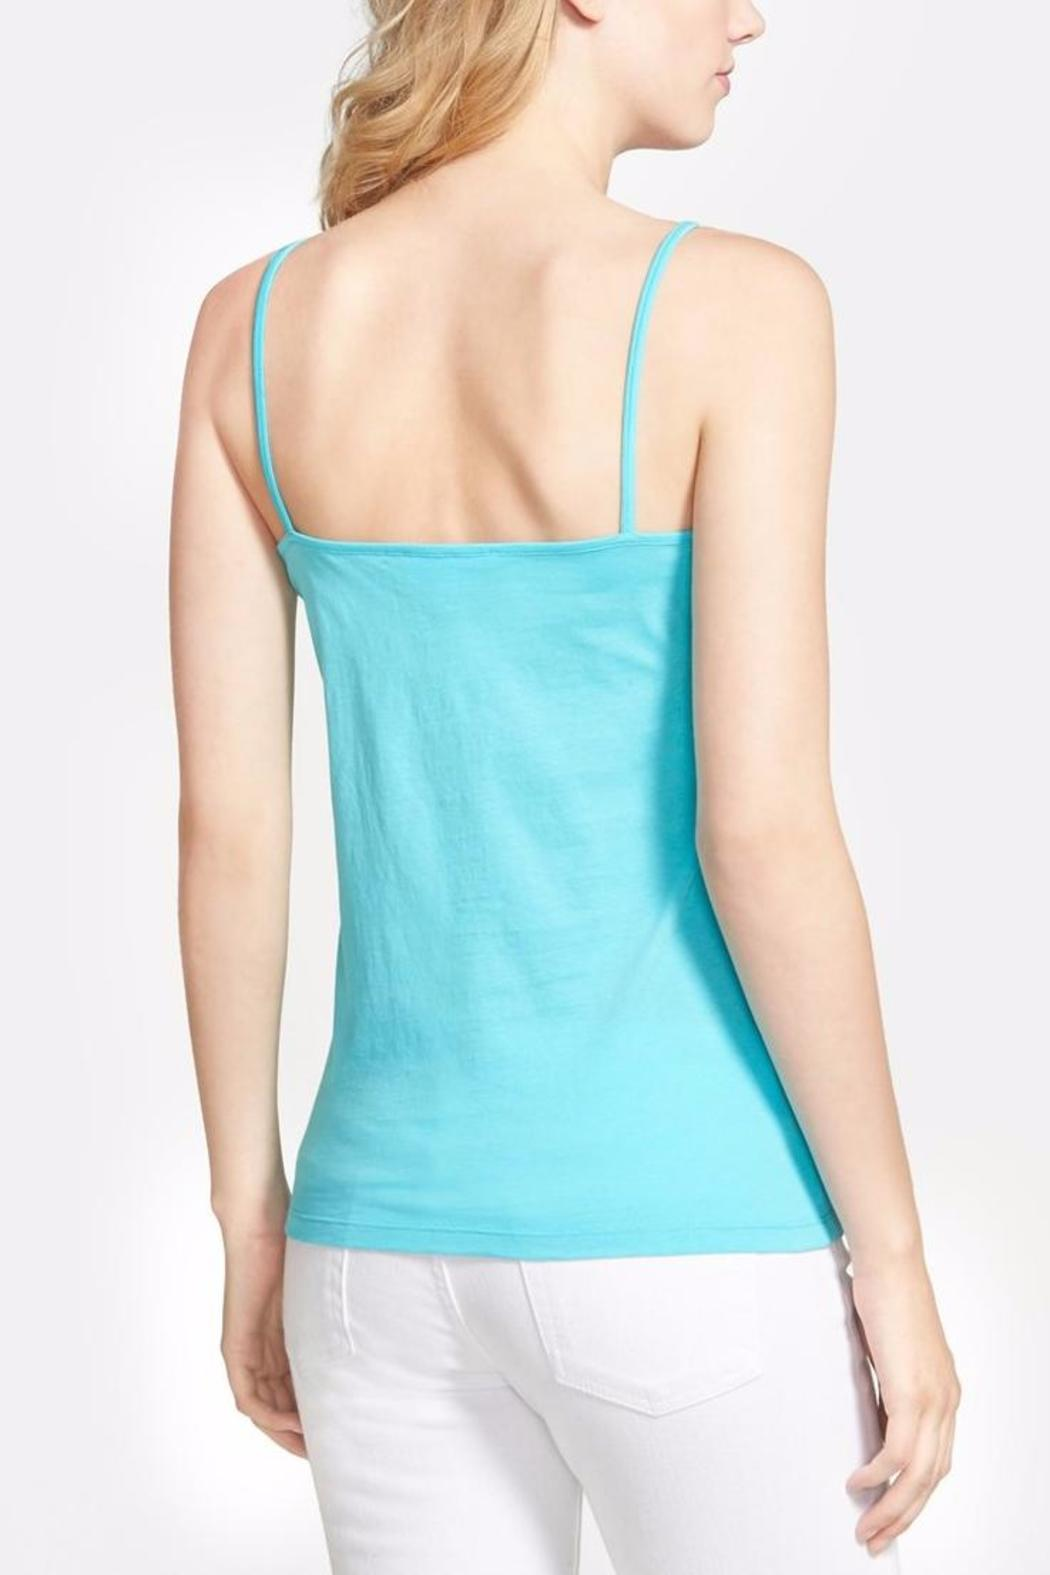 MICHAEL Michael Kors Logo Medallion Camisole - Front Full Image